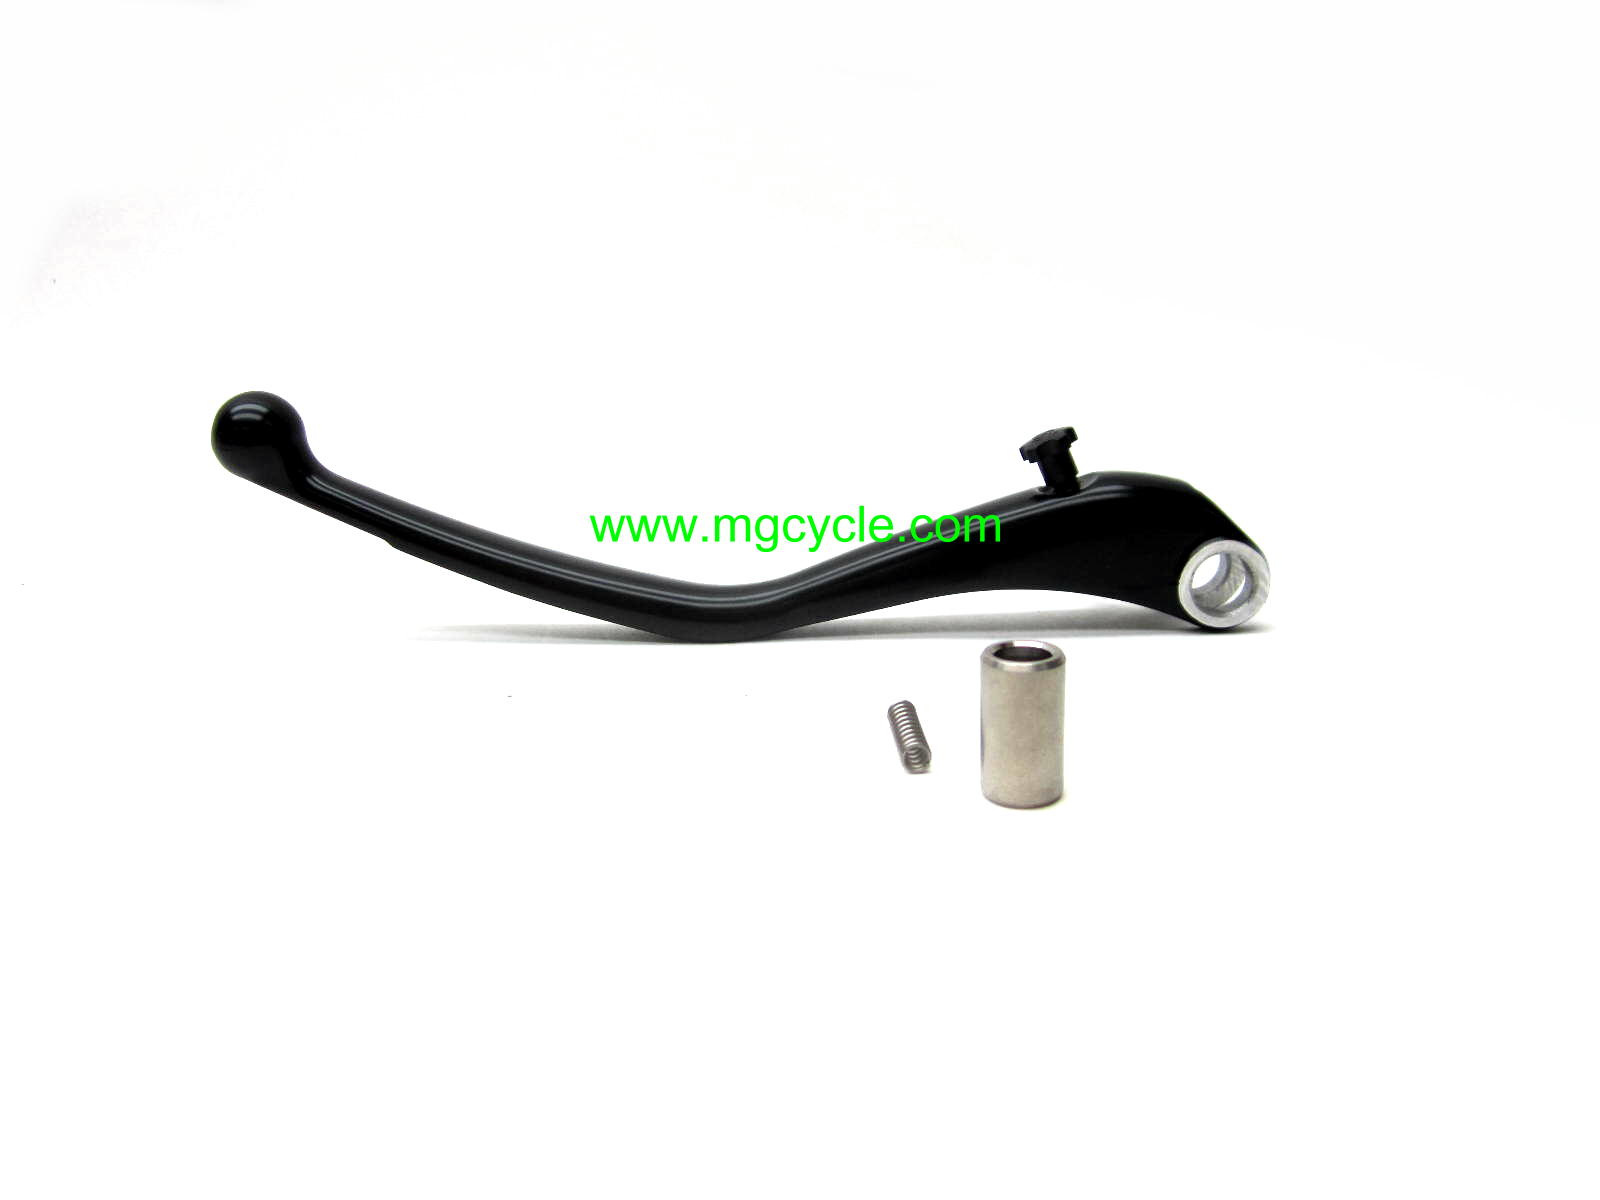 clutch lever, Ducati Multistrada 1098 Diavel Streetfighter